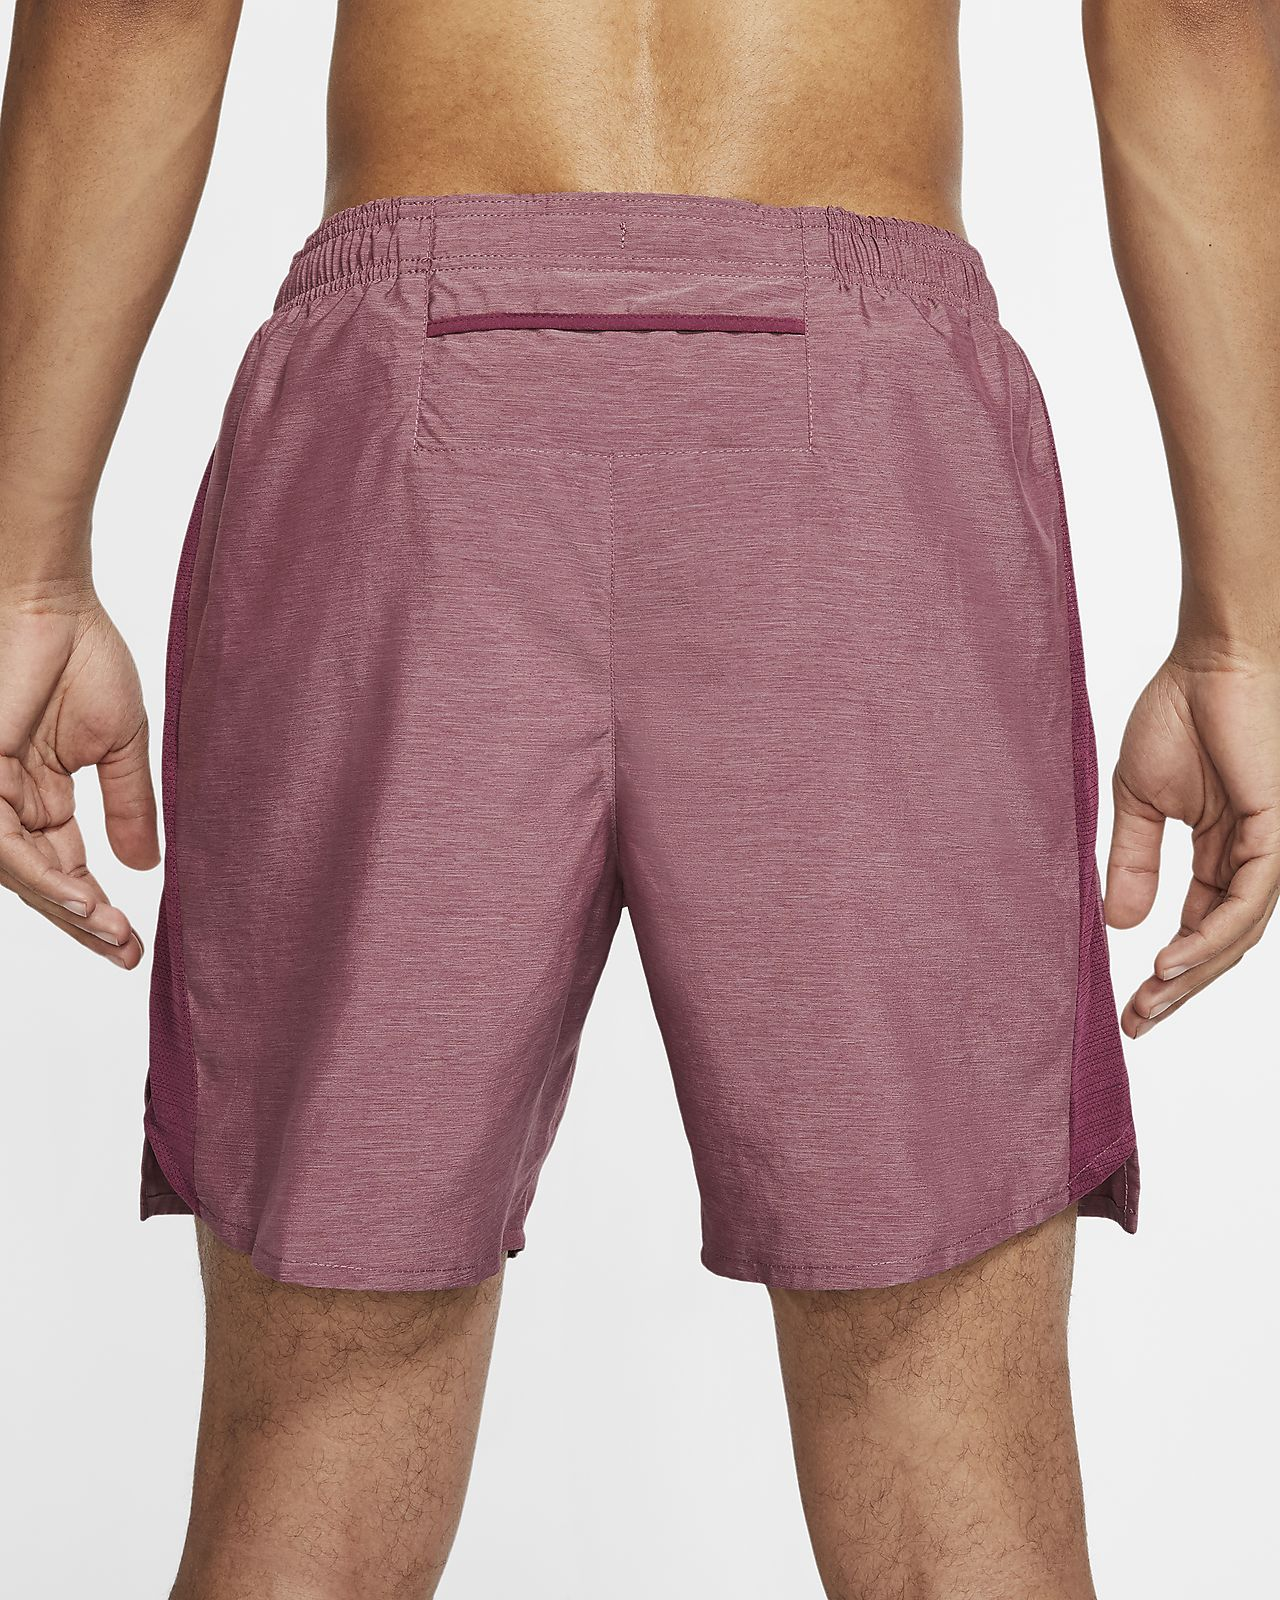 nike 7 inch training shorts